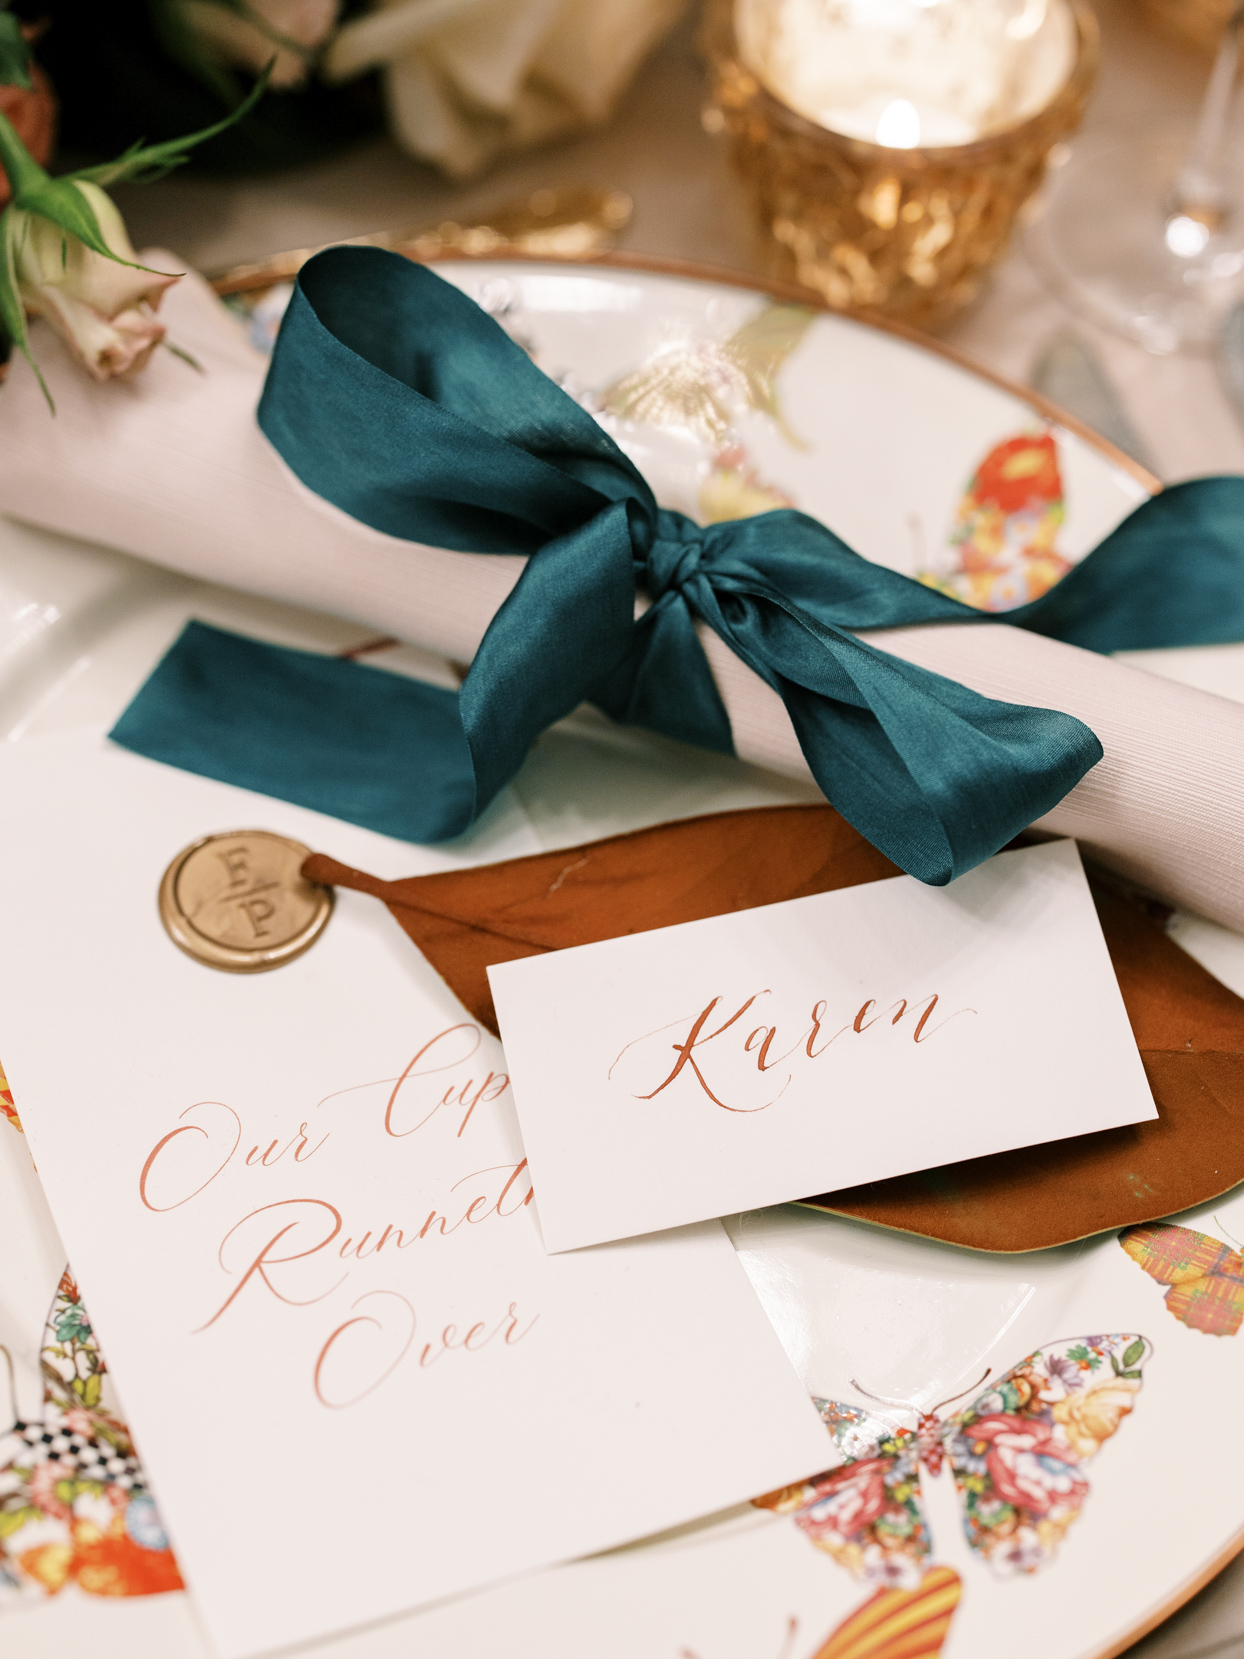 elegant wedding reception place settings and butterfly decor